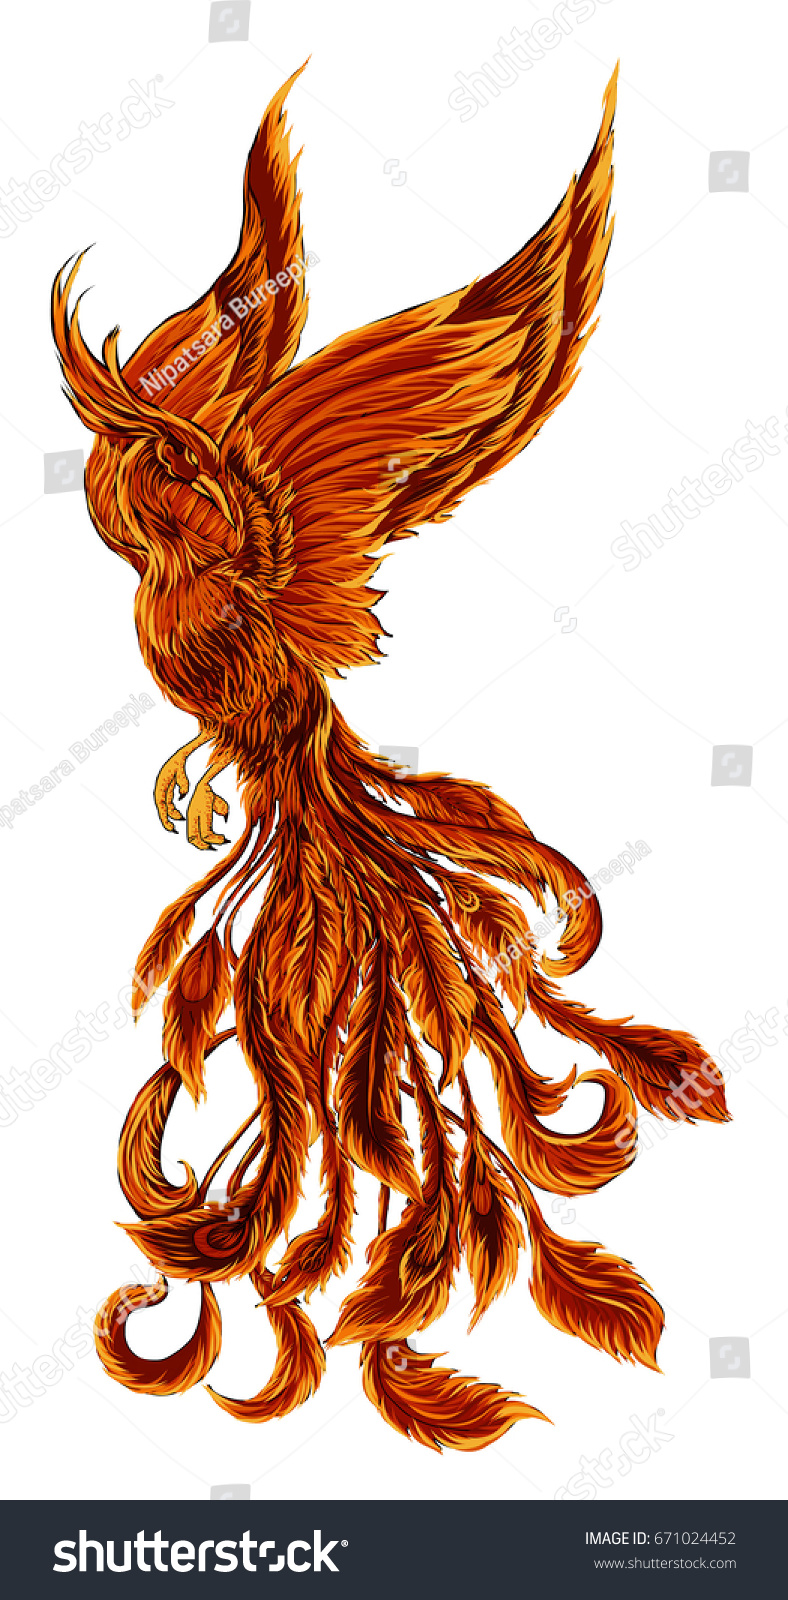 phoenix fire bird illustration character designhand stock vector 671024452 shutterstock. Black Bedroom Furniture Sets. Home Design Ideas